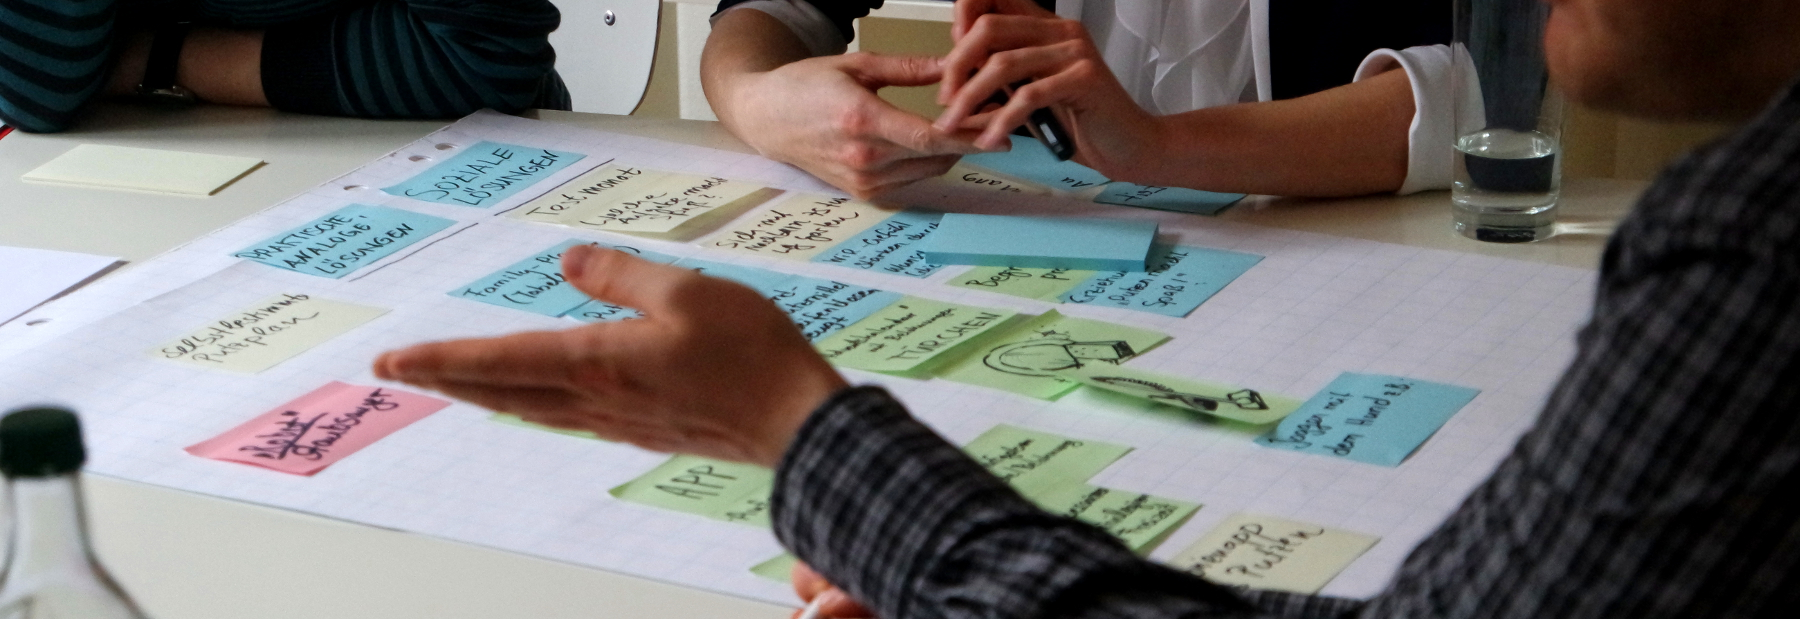 Design Thinking for Business Success